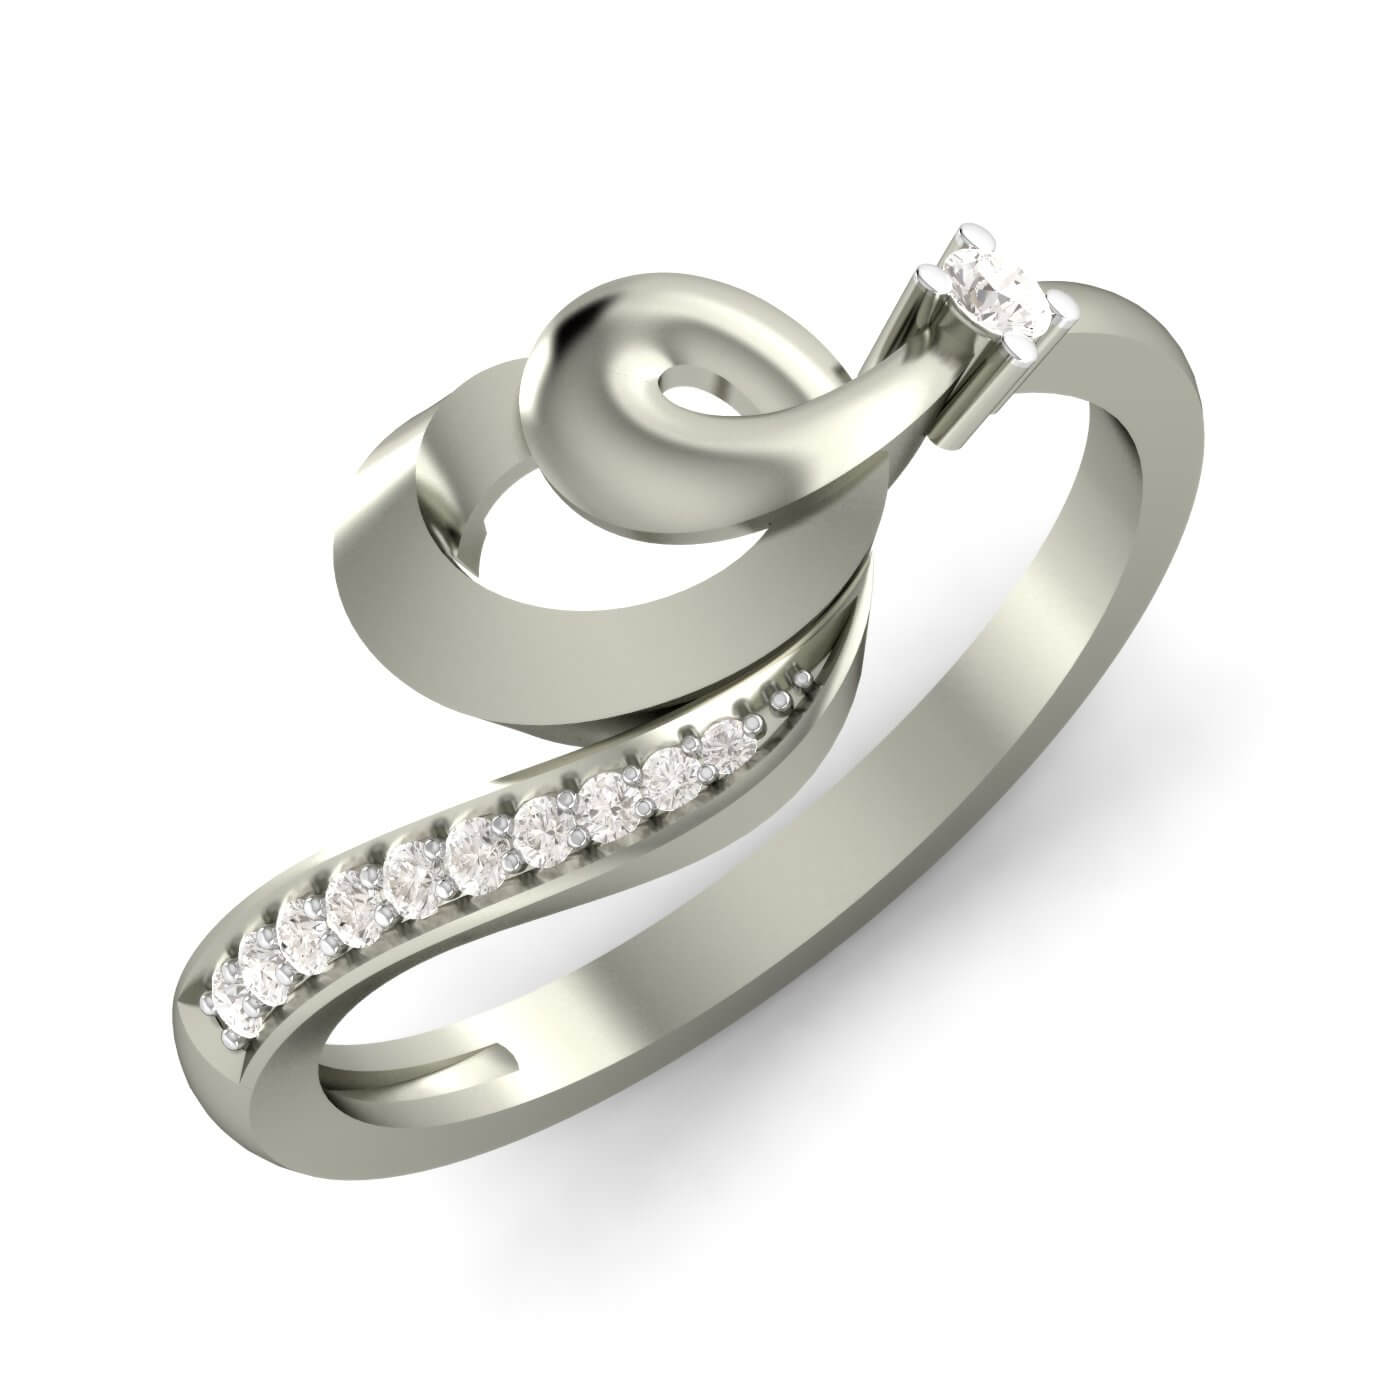 com rings wedding awesome online affordable jewellery canada matvuk buy beautiful cebu of